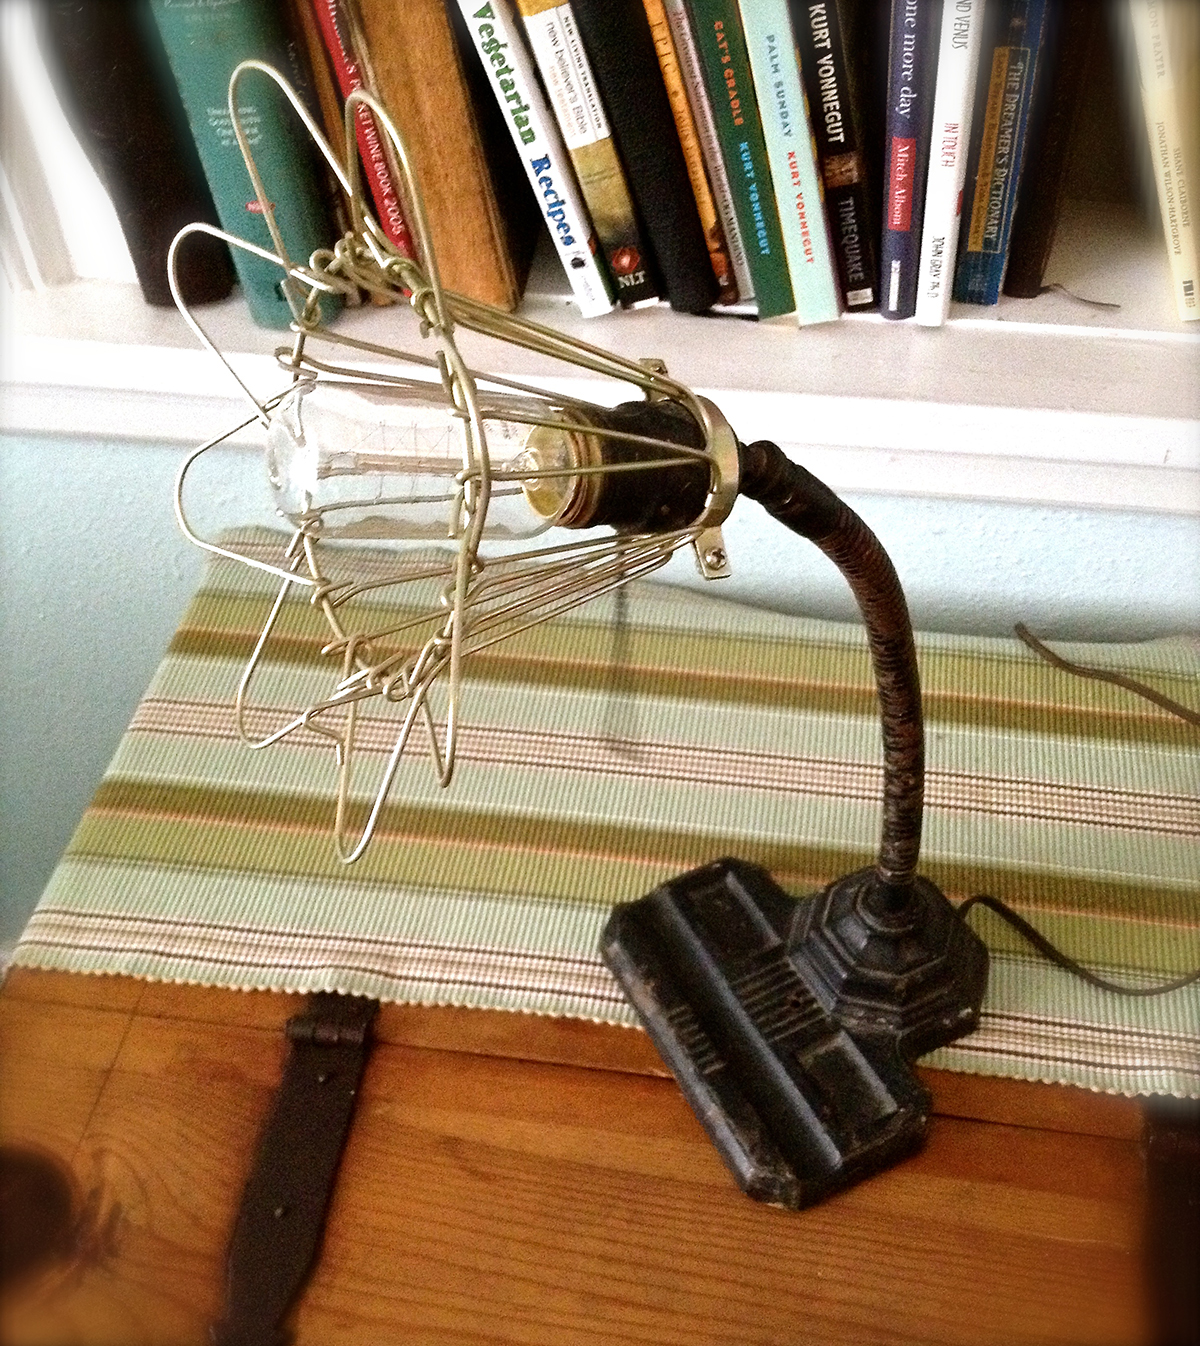 Vintage 40s cast iron metal deco industrial gooseneck desk lamp light - Vintage Gooseneck Desk Lamp With A Cast Iron Base Flexible Neck Brass Socket And Industrial Work Light Style Adjustable Cage